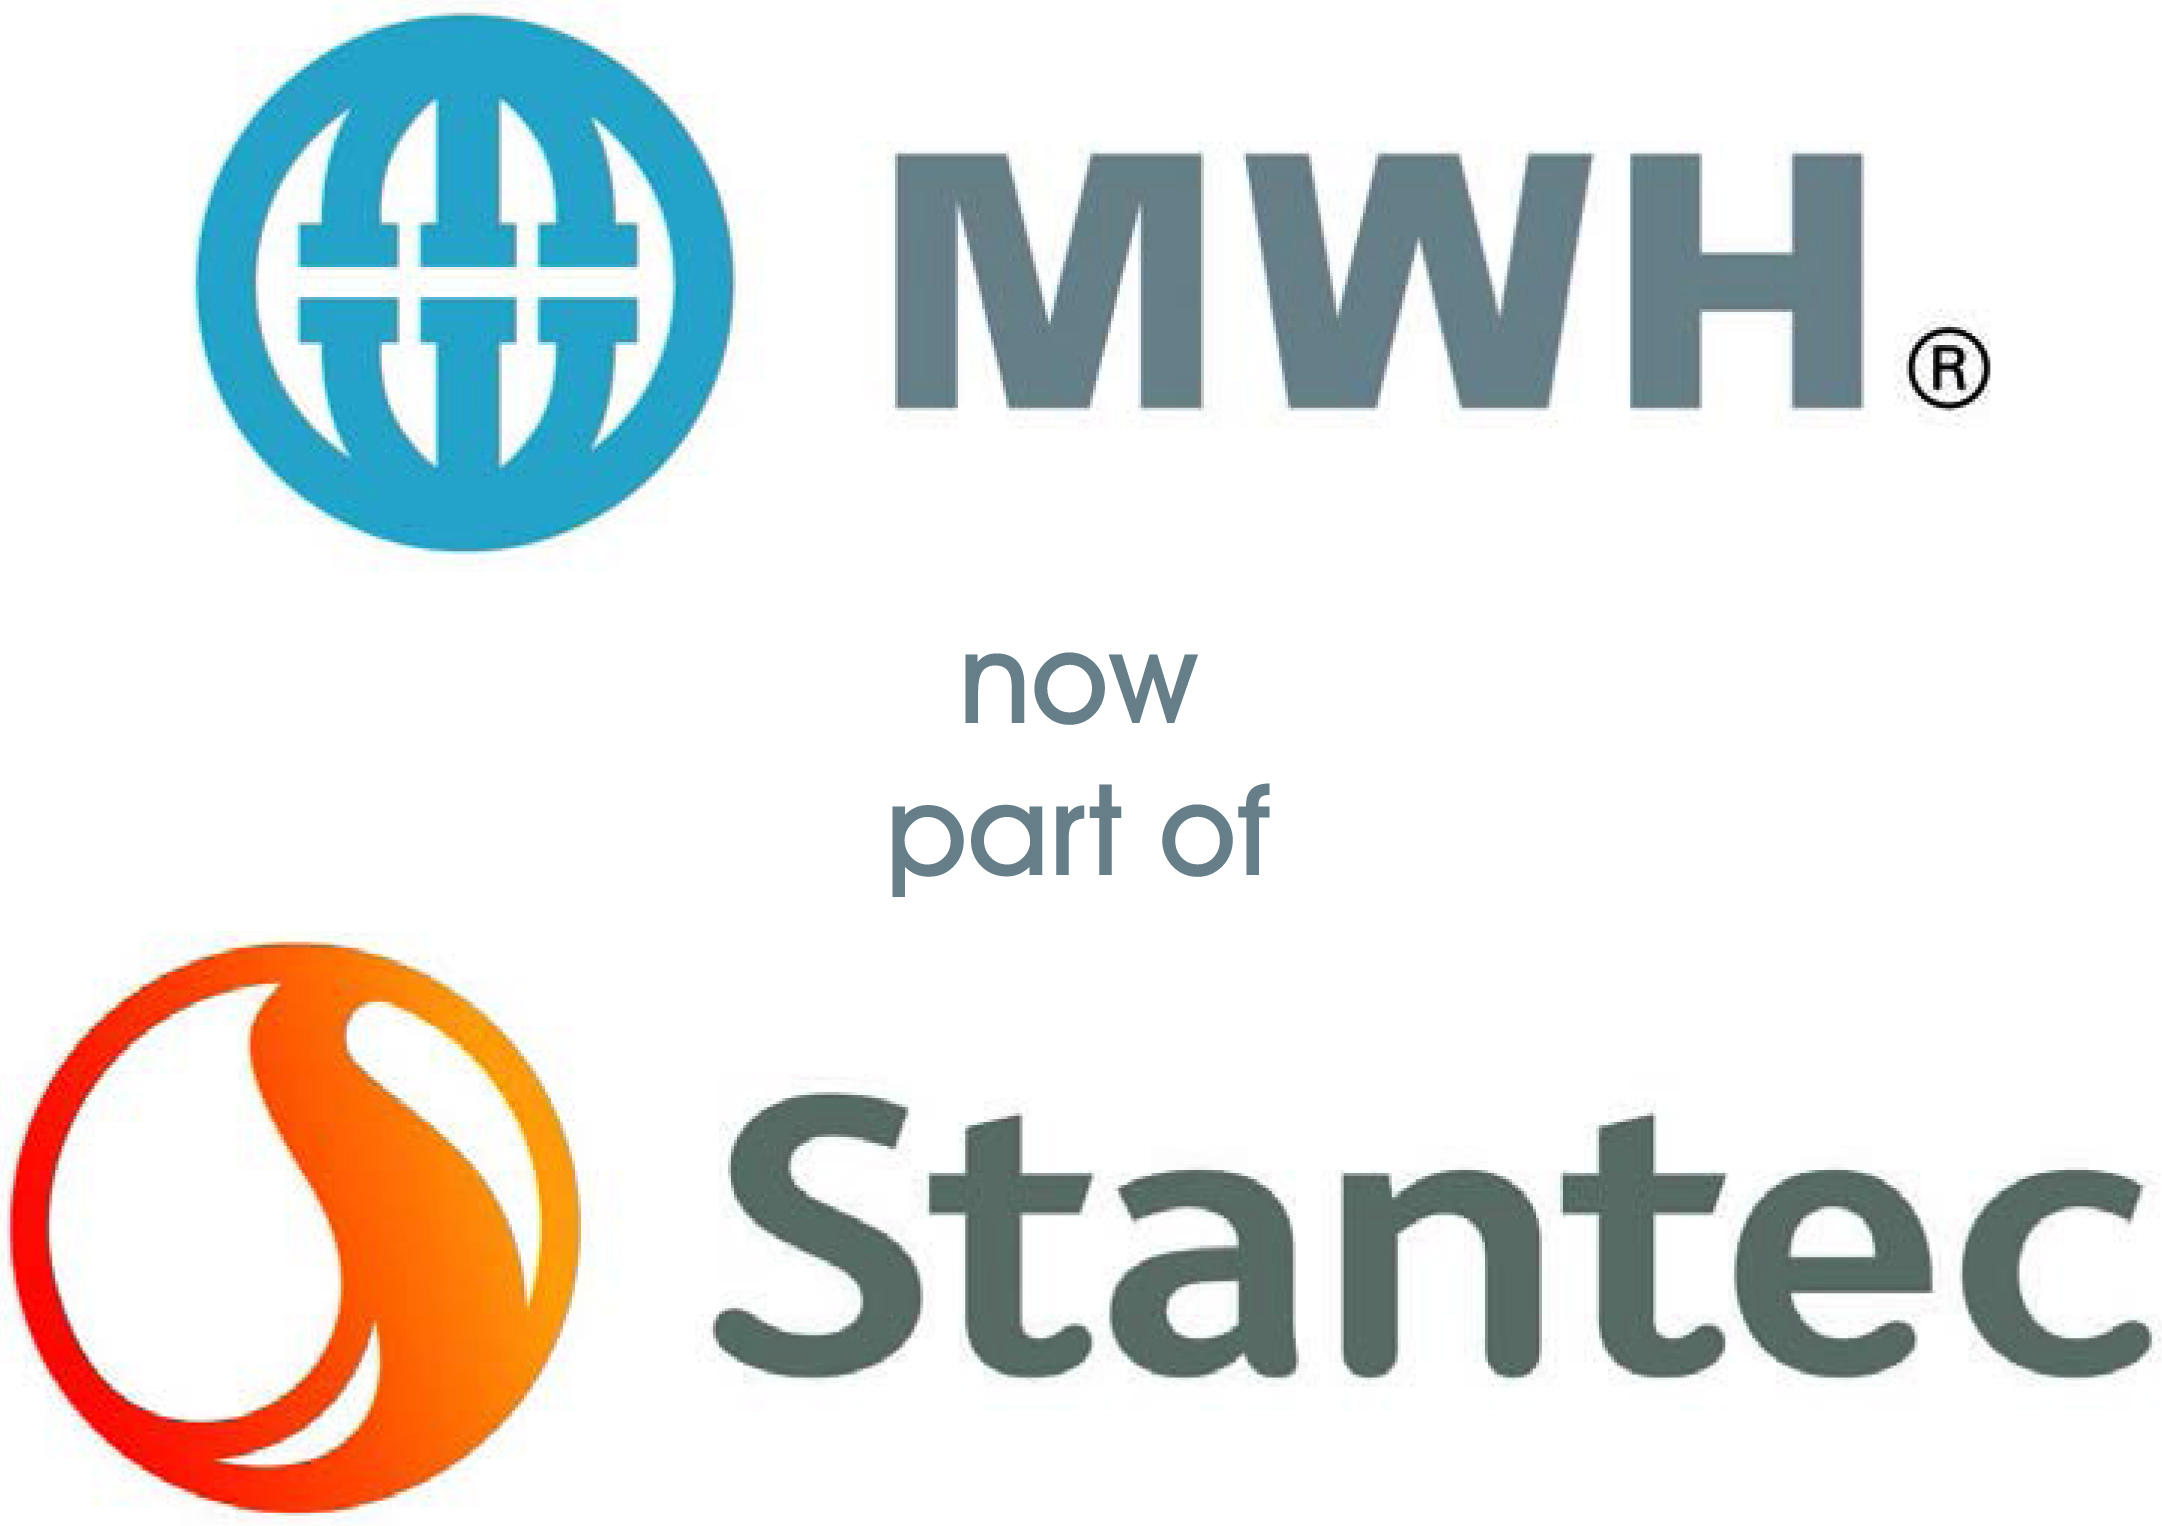 www.mwhglobal.com/bettertogether/ - please click on the image to discover more